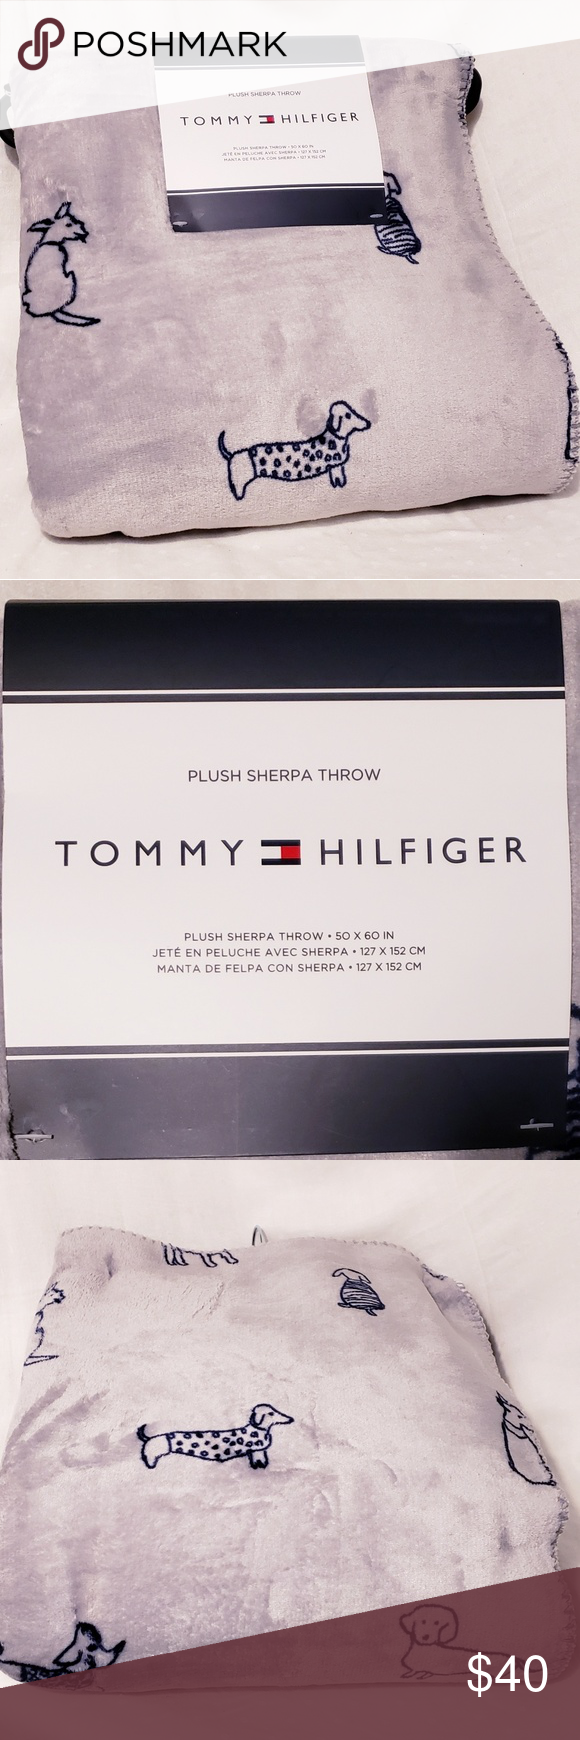 Tommy Hilfiger Doggie Plush Sherpa Blanket Brand New With Tags Designer Quot Tommy Hilfiger Quot Doggie